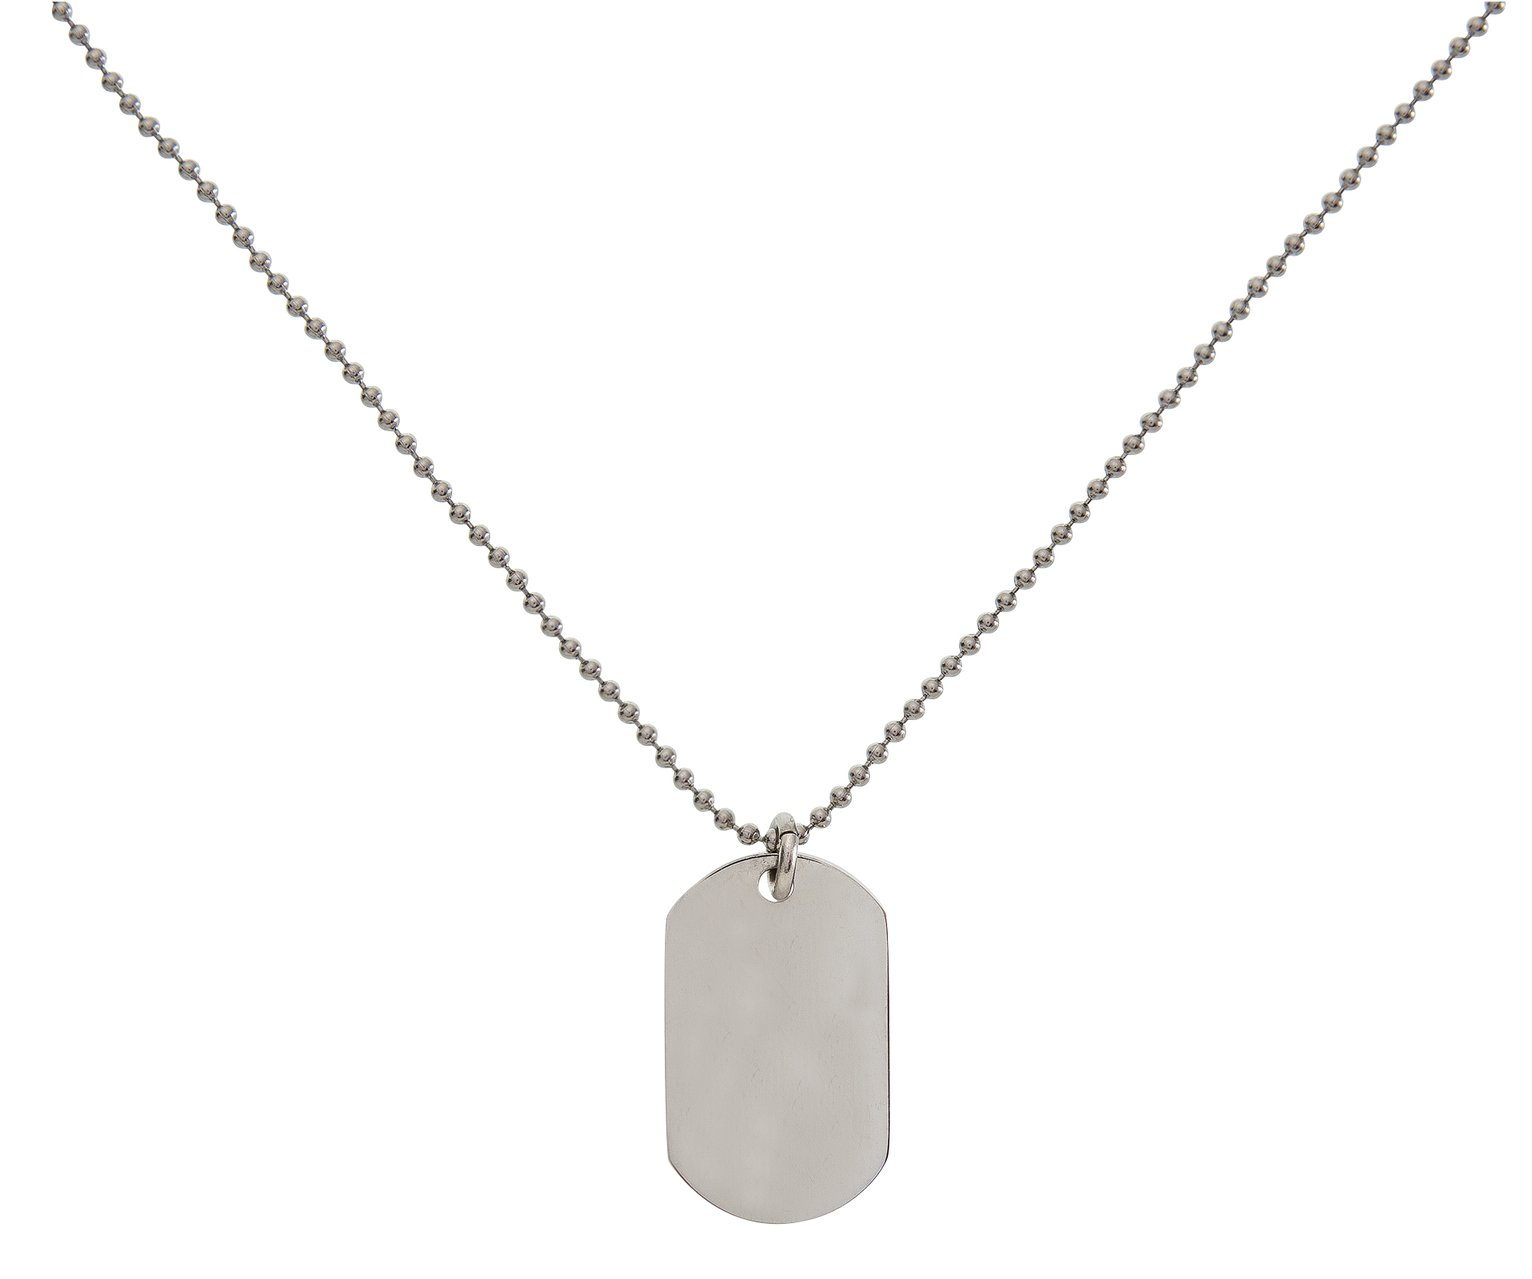 Revere Kid's Stainless Steel Dog Tag Pendant